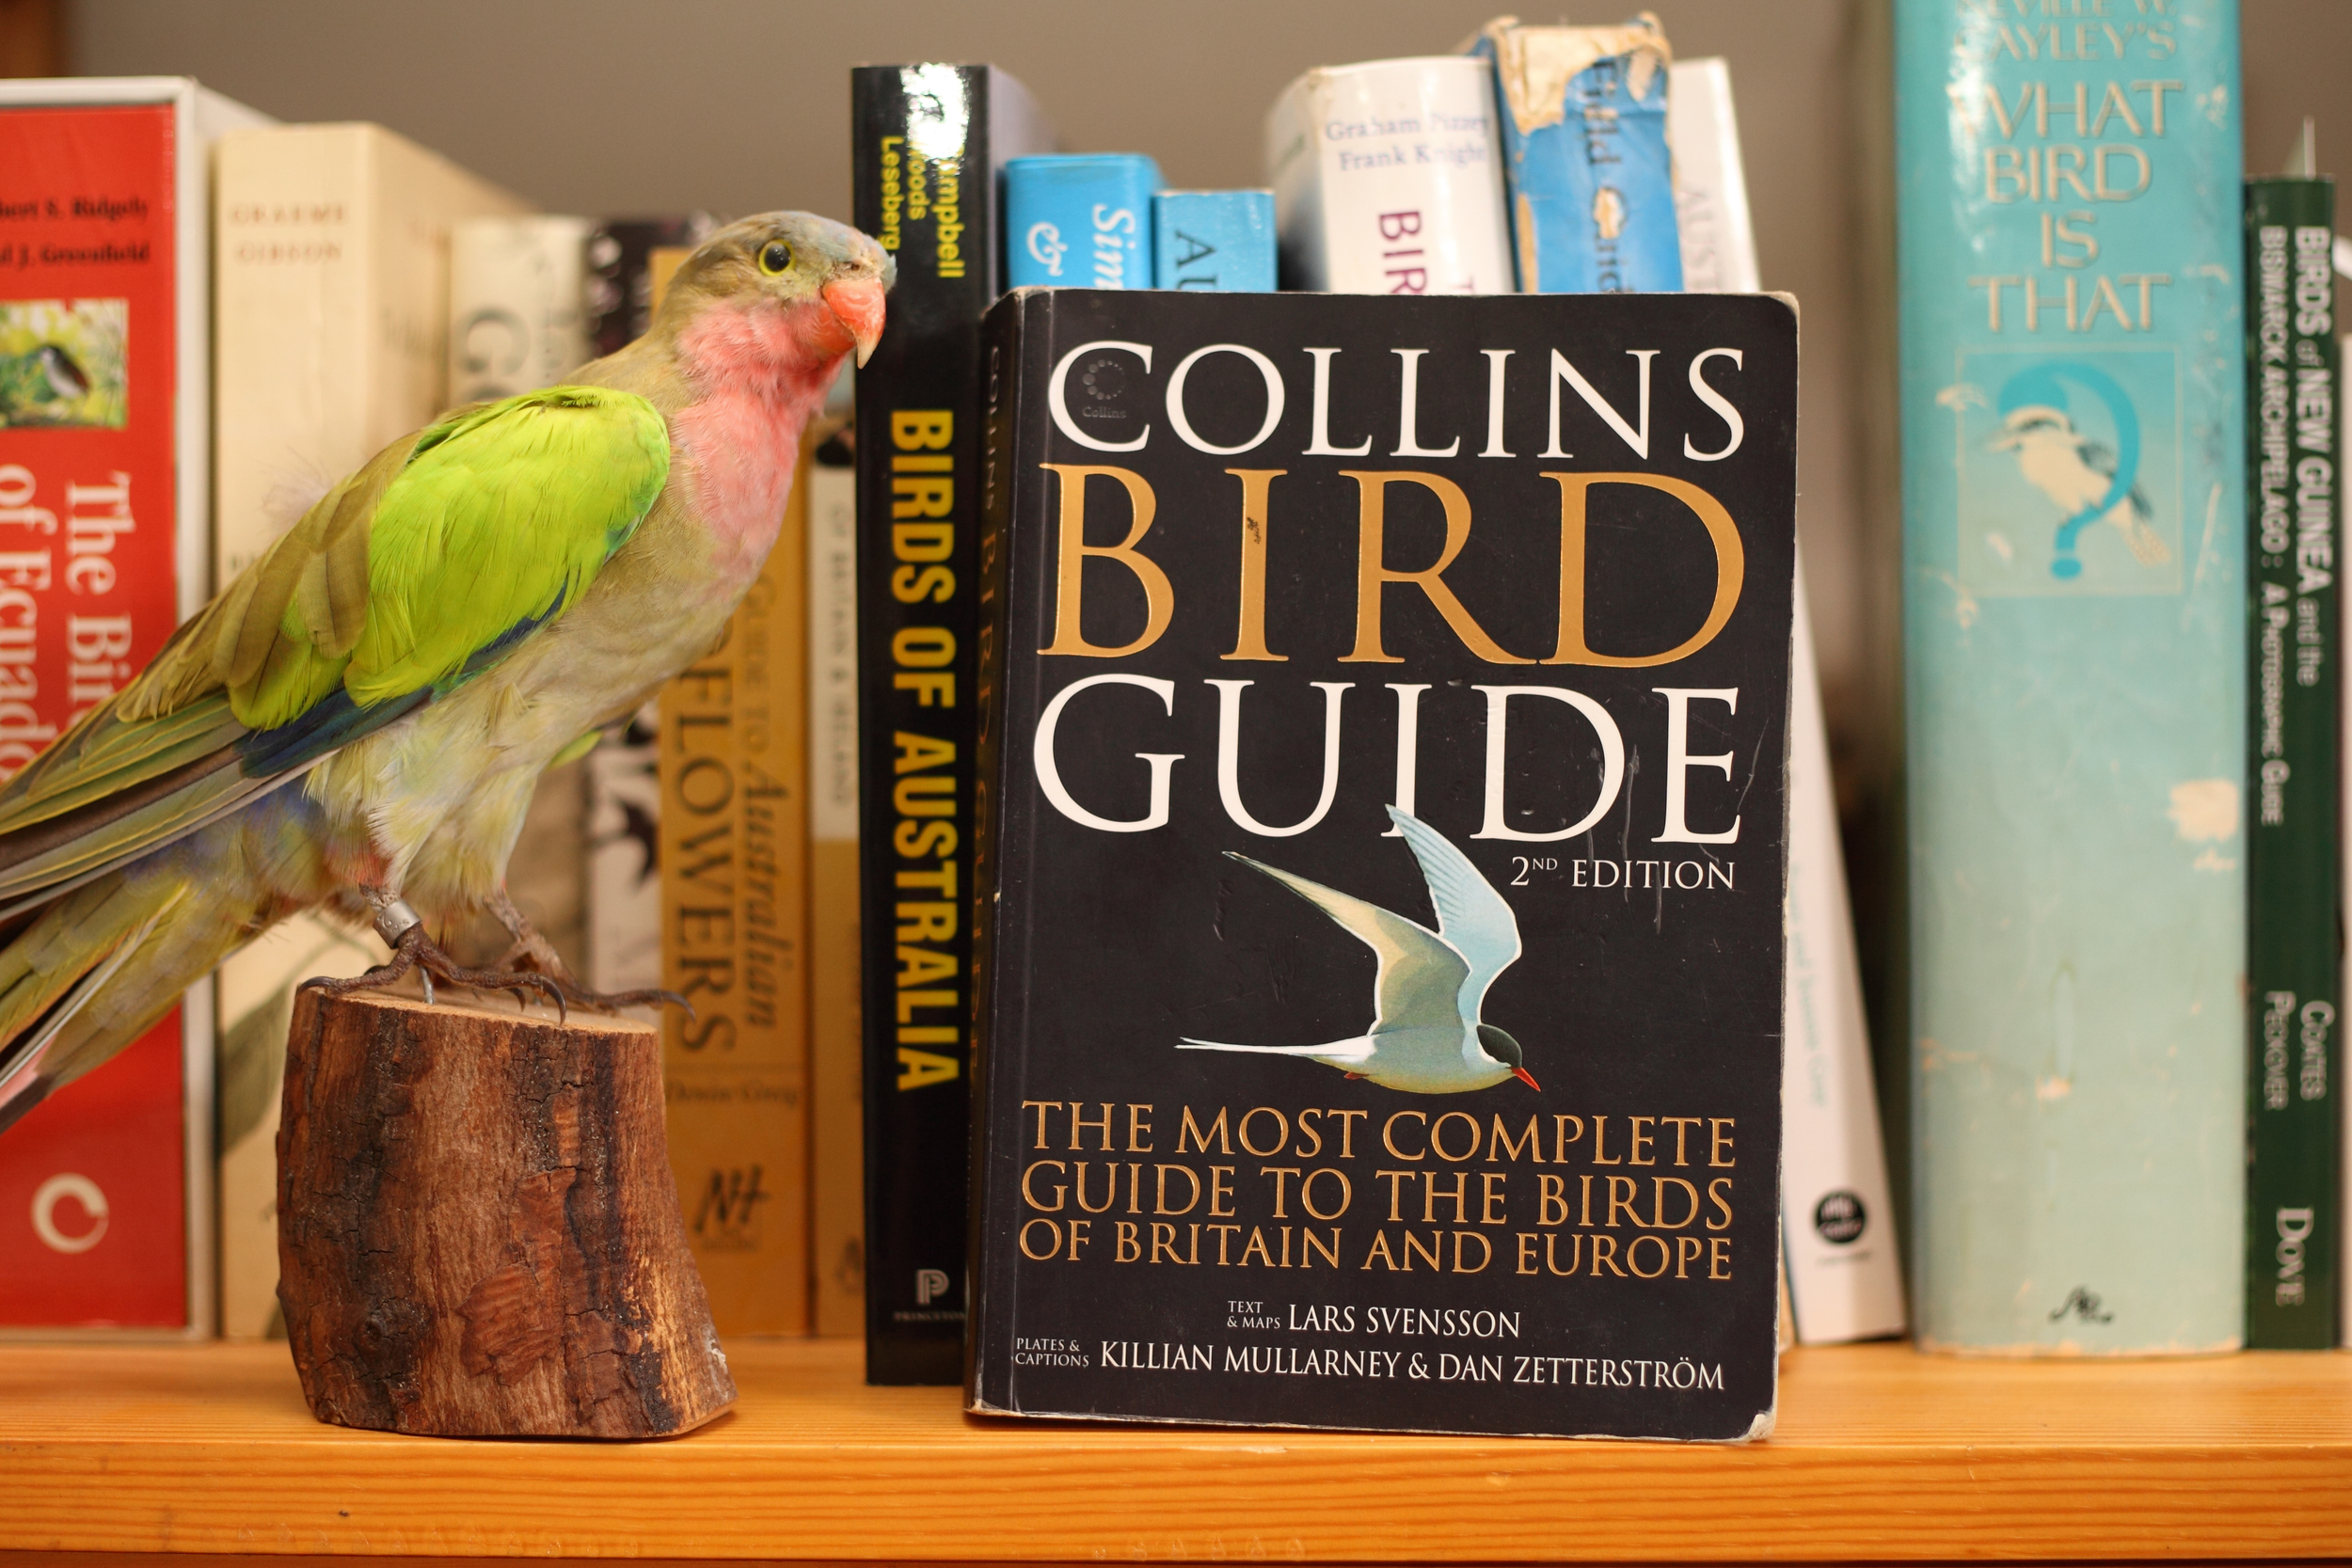 If the imminent field guide from CSIRO Publishing achieves even close to the acclaim that this book has received it'll be a huge success. No pressure.